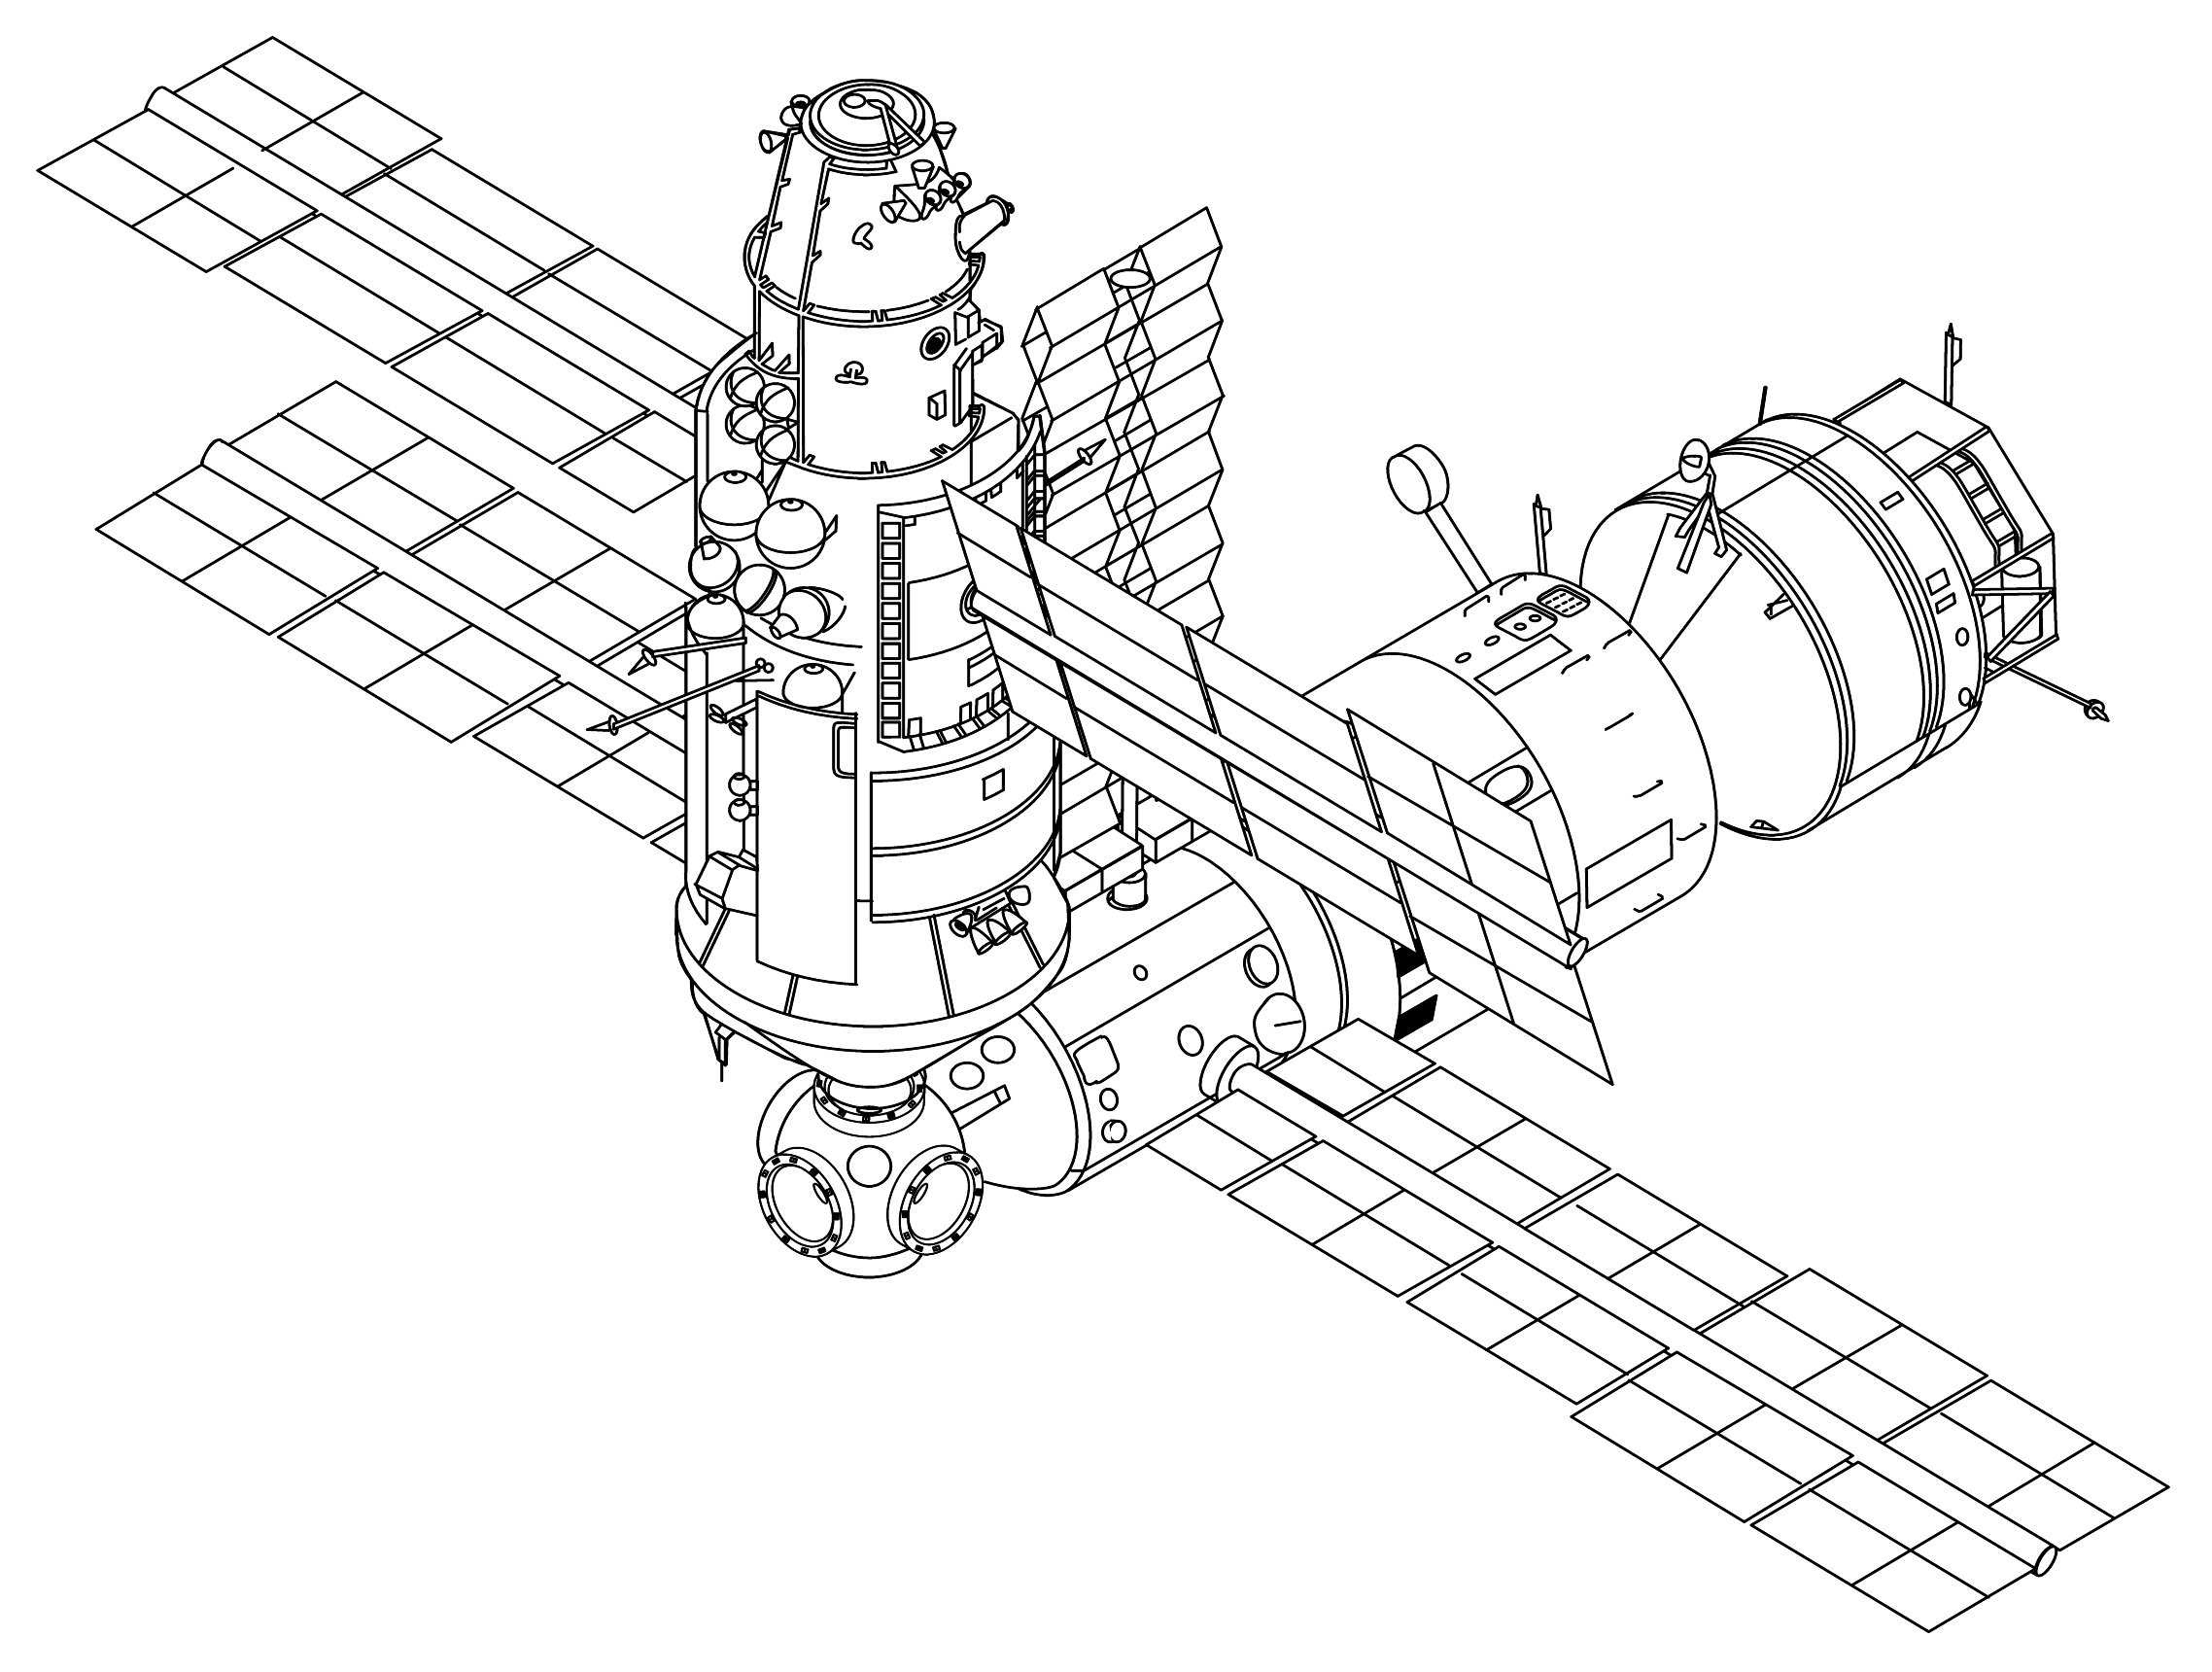 Space Station Dimension Drawing